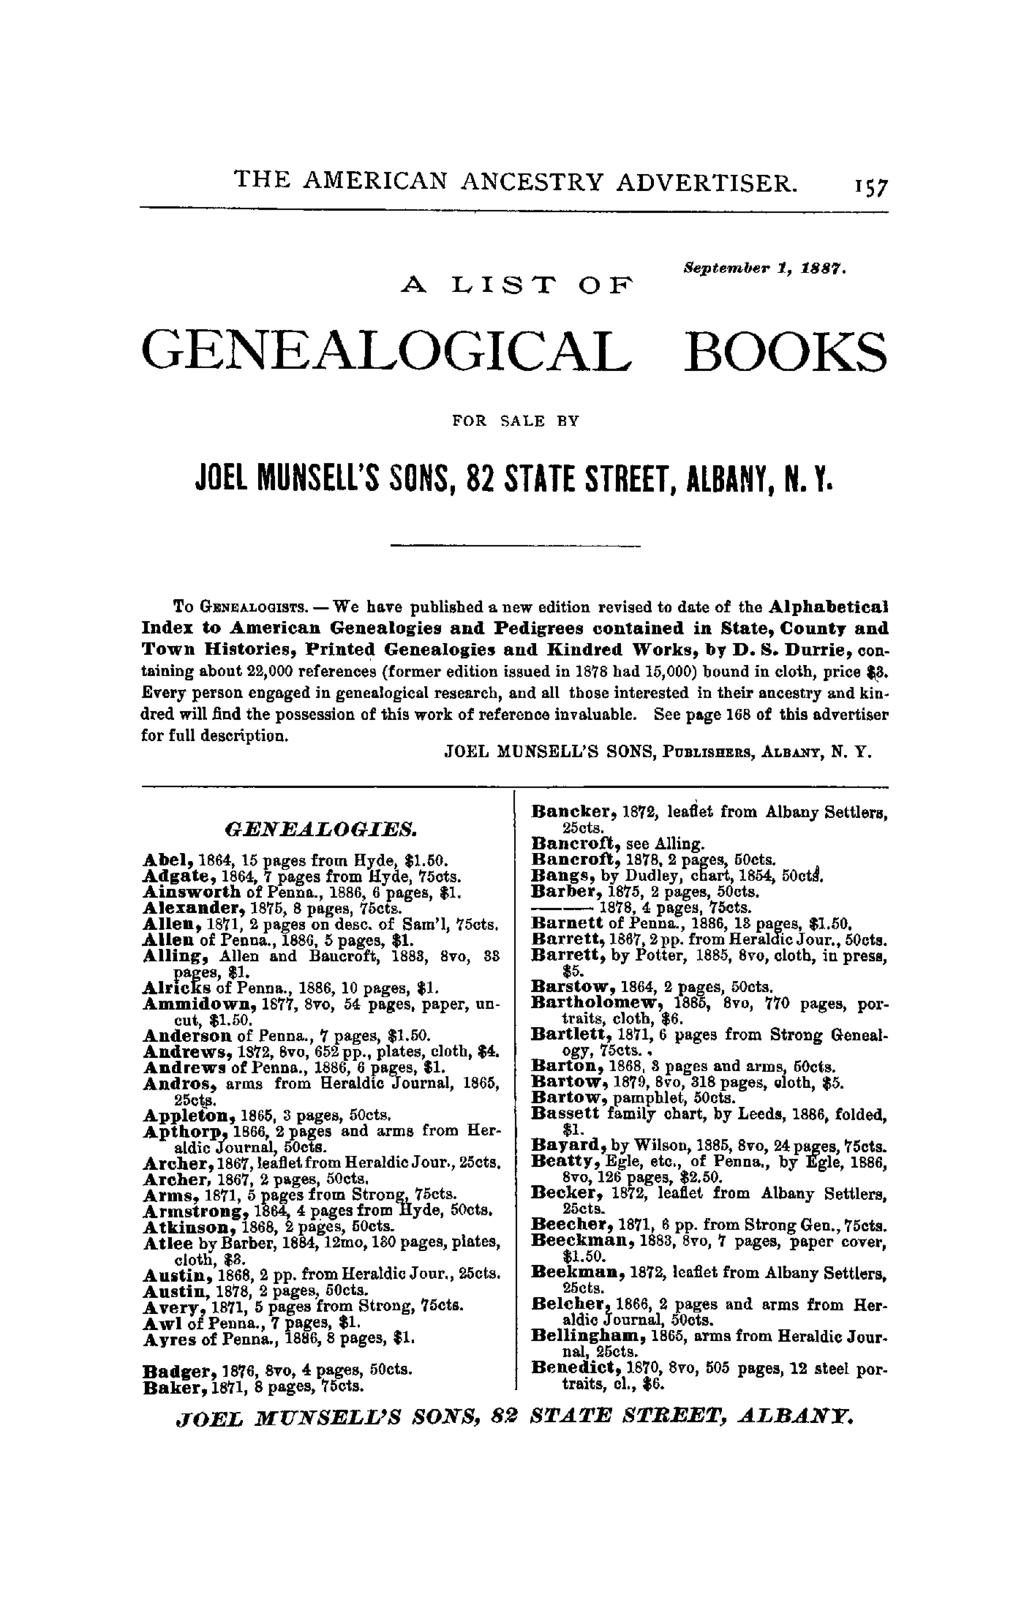 THE AMERICAN ANCESTRY ADVERTISER. 157 A LIST OF September 1, 188'1. GENEALOGICAL BOOKS FOR SALE BY JOEL MUNSELL'S SONS, 82 STATE STREET, ALBANY, N. Y. To GENEALOGISTS.